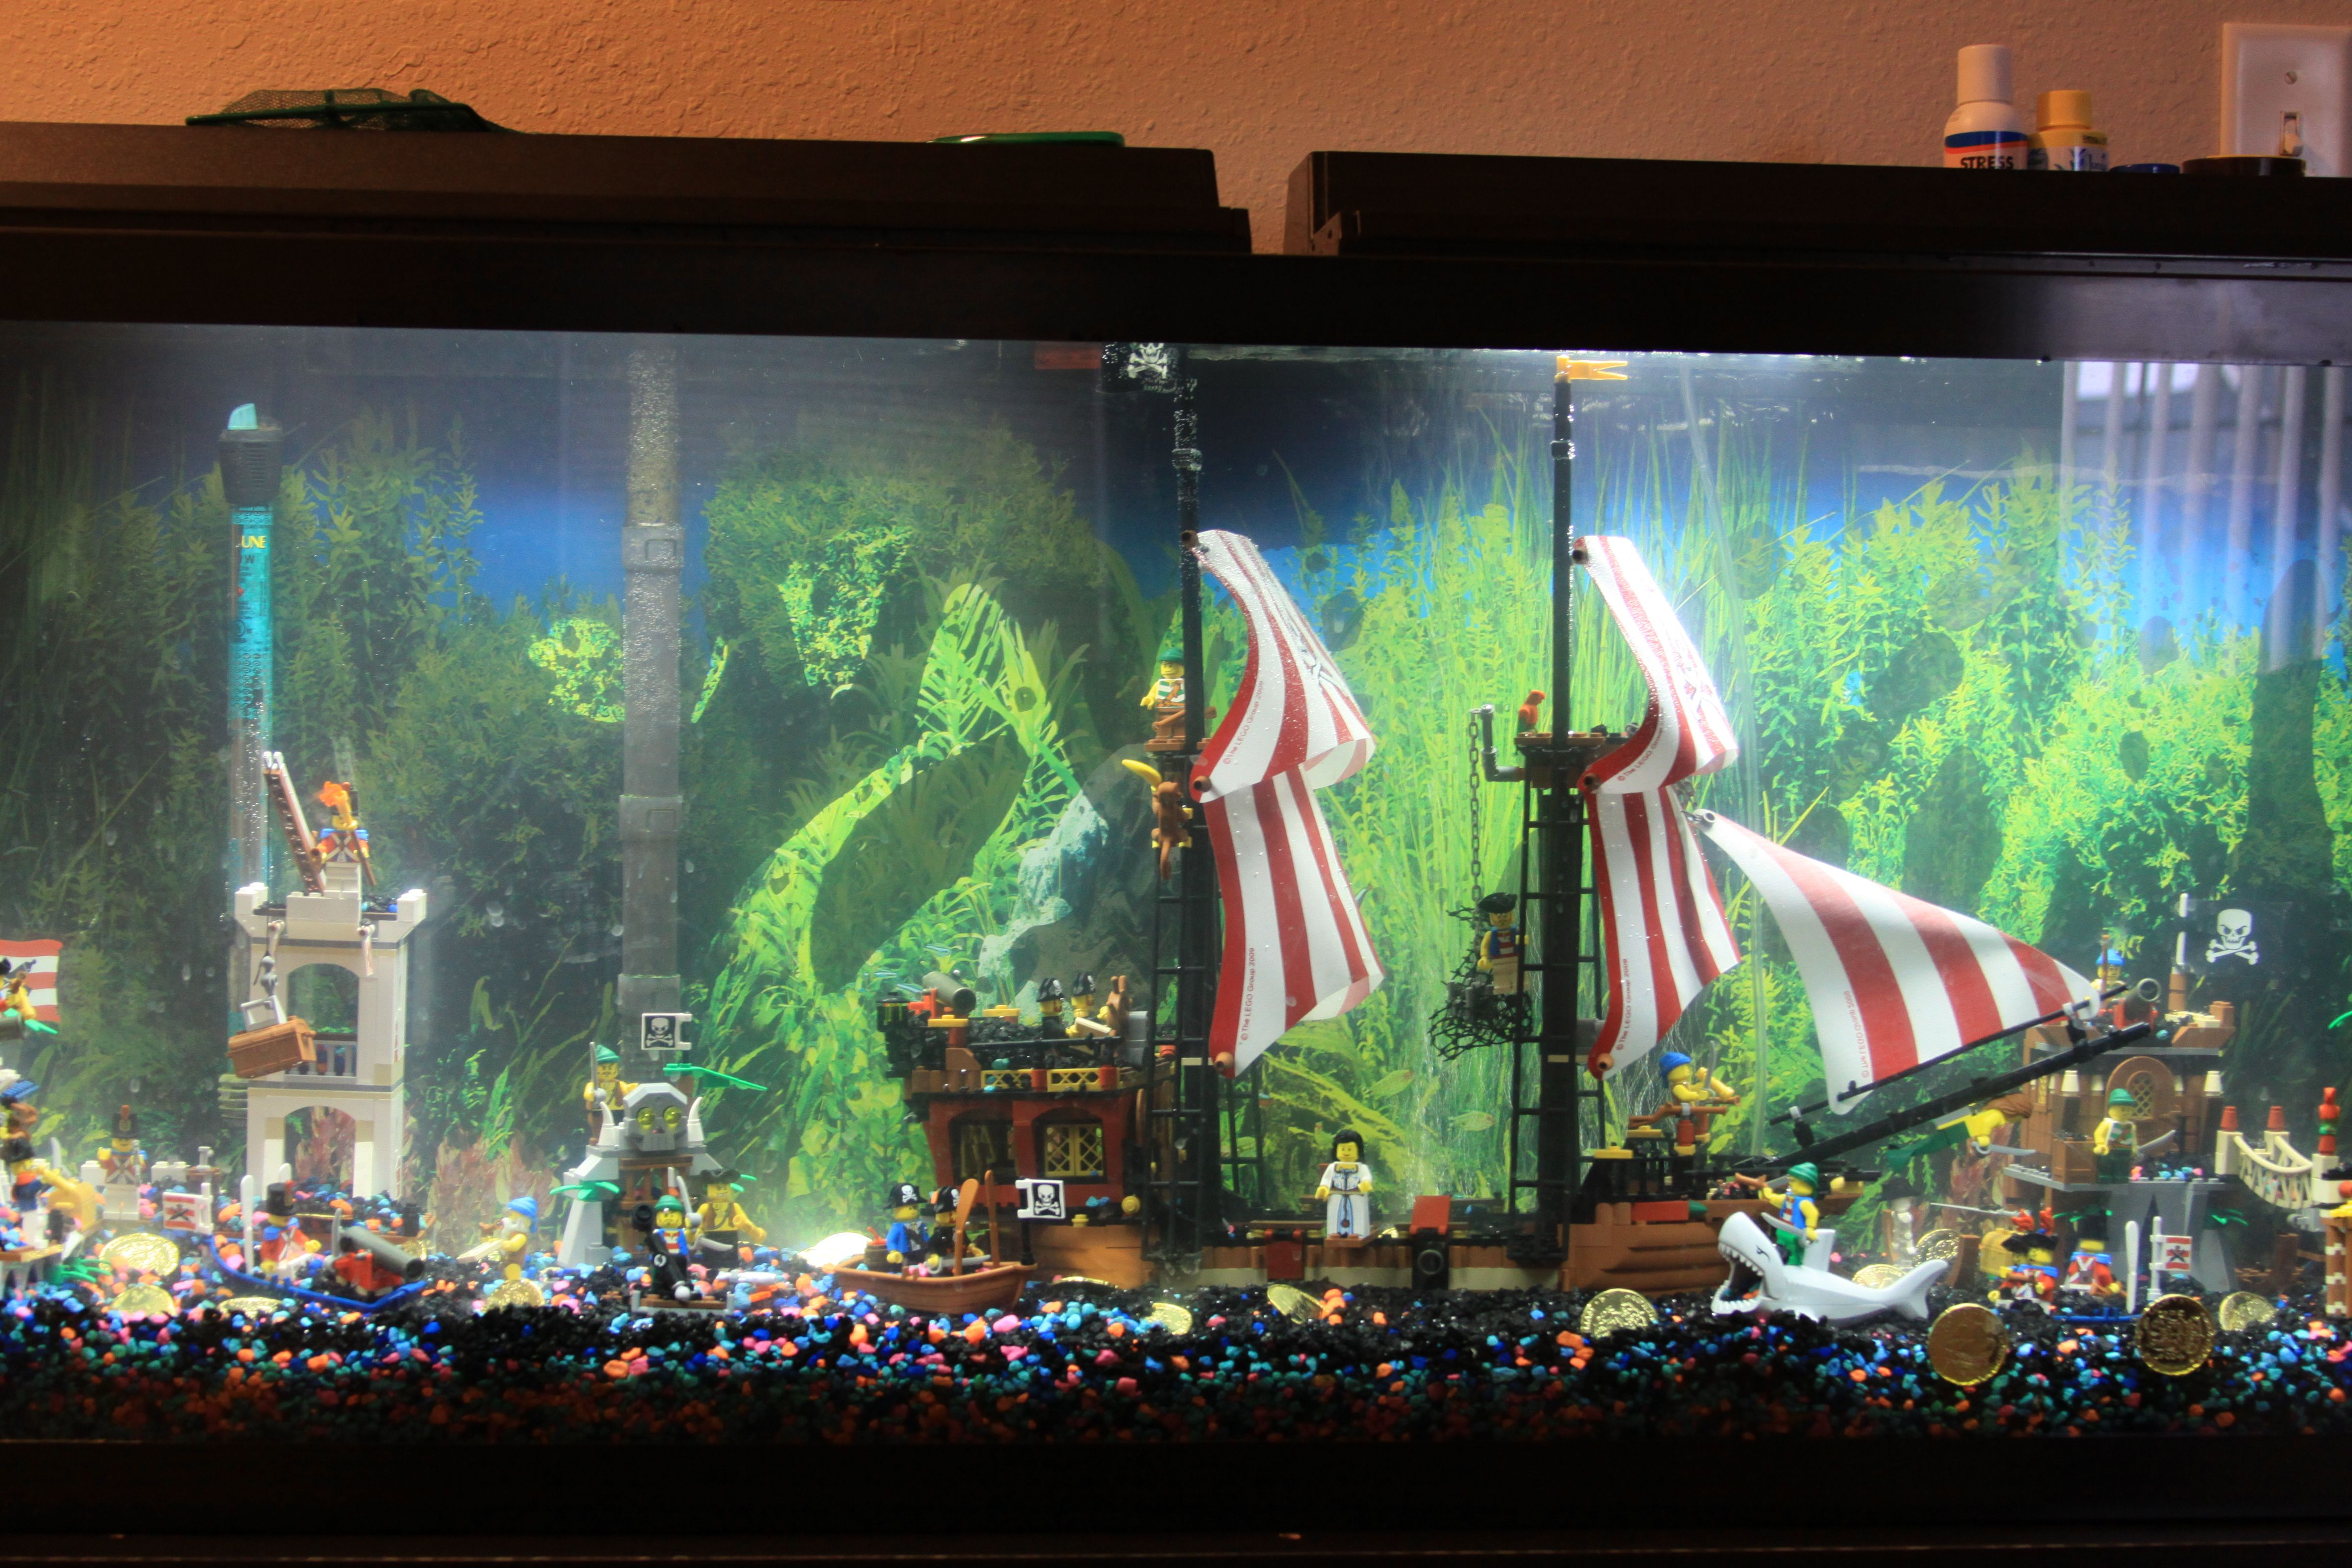 What my son wants is a fish tank with a filter in the back and legos